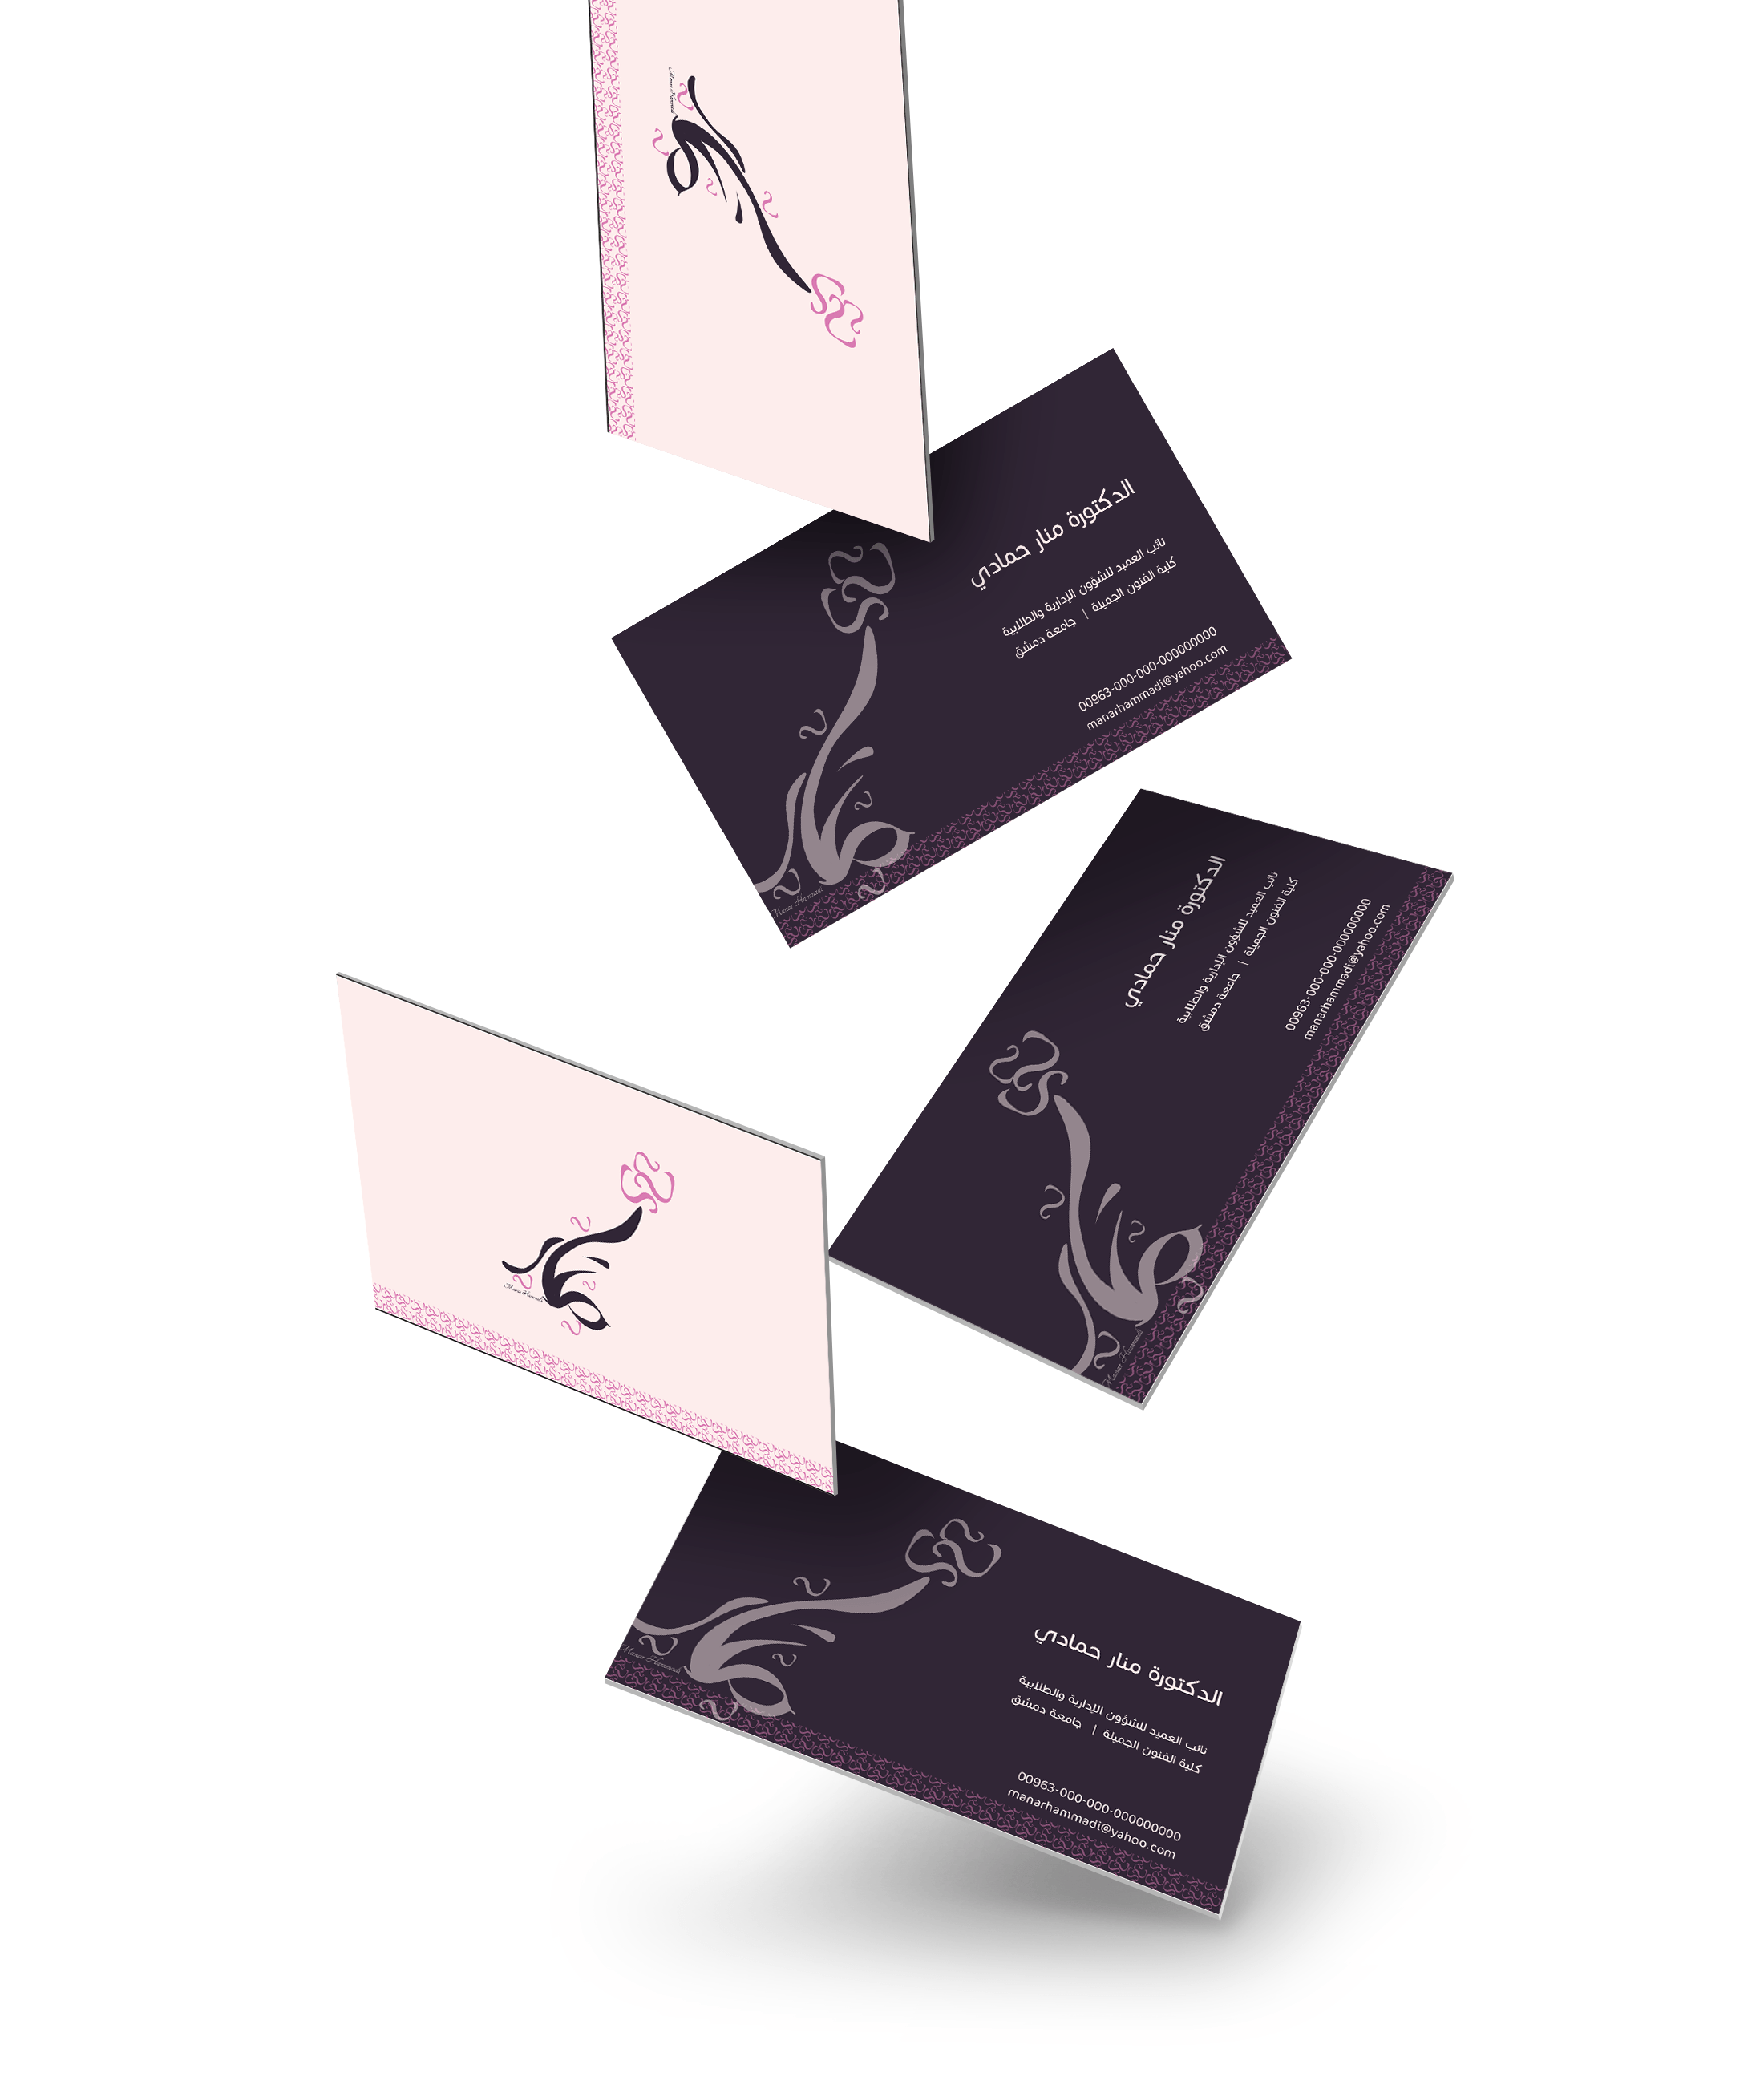 manar hammadi falling business card design